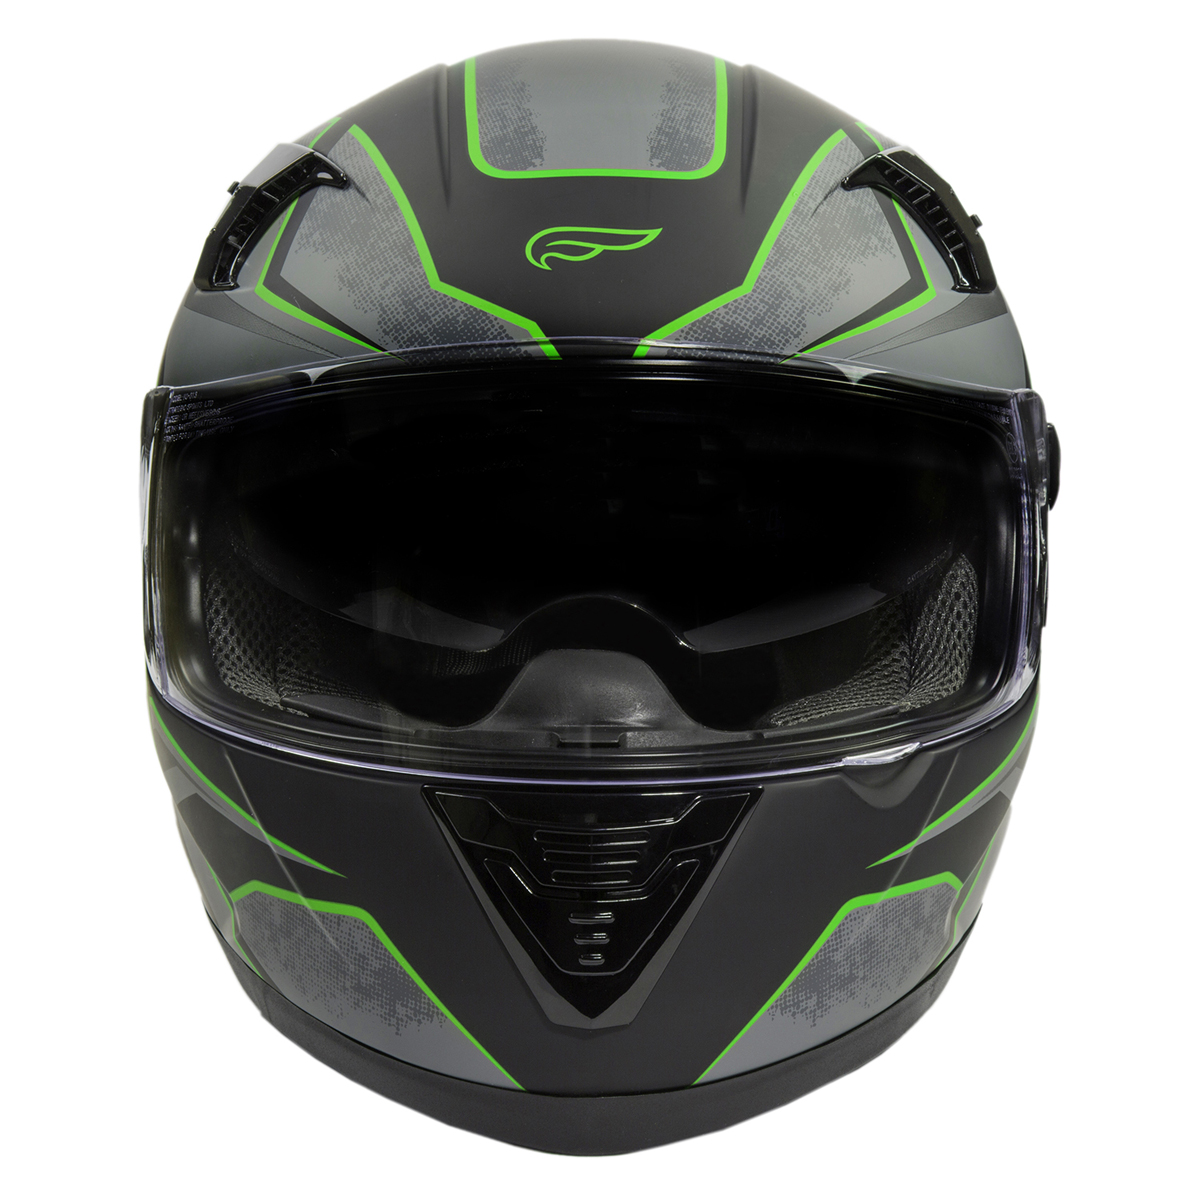 Fulmer-Adult-Full-Face-Motorcycle-Helmet-151-Pulse-DOT-Approved-Street-Bike thumbnail 13